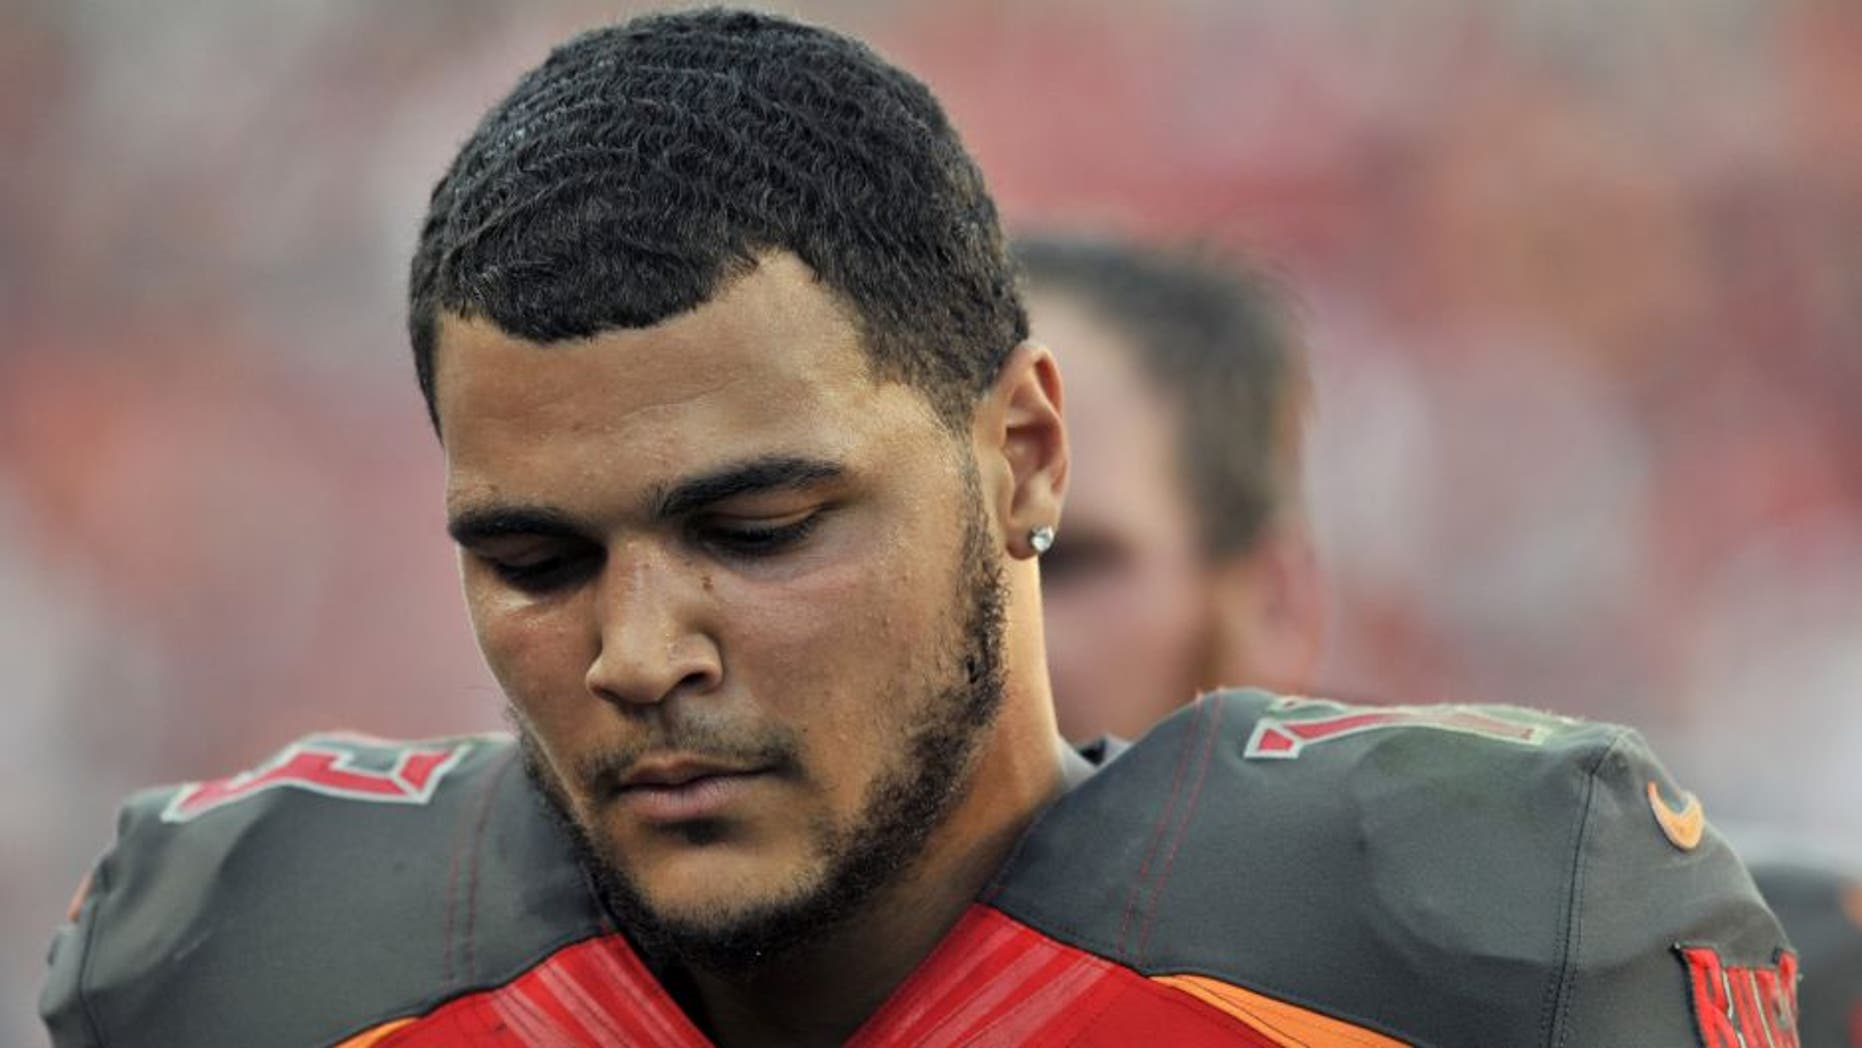 Tampa Bay Buccaneers wide receiver Mike Evans (13) leaves the field following the team's 14-13 loss to the Cincinnati Bengals during an NFL football game Sunday, Nov. 30, 2014, in Tampa, Fla. (AP Photo/Steve Nesius)